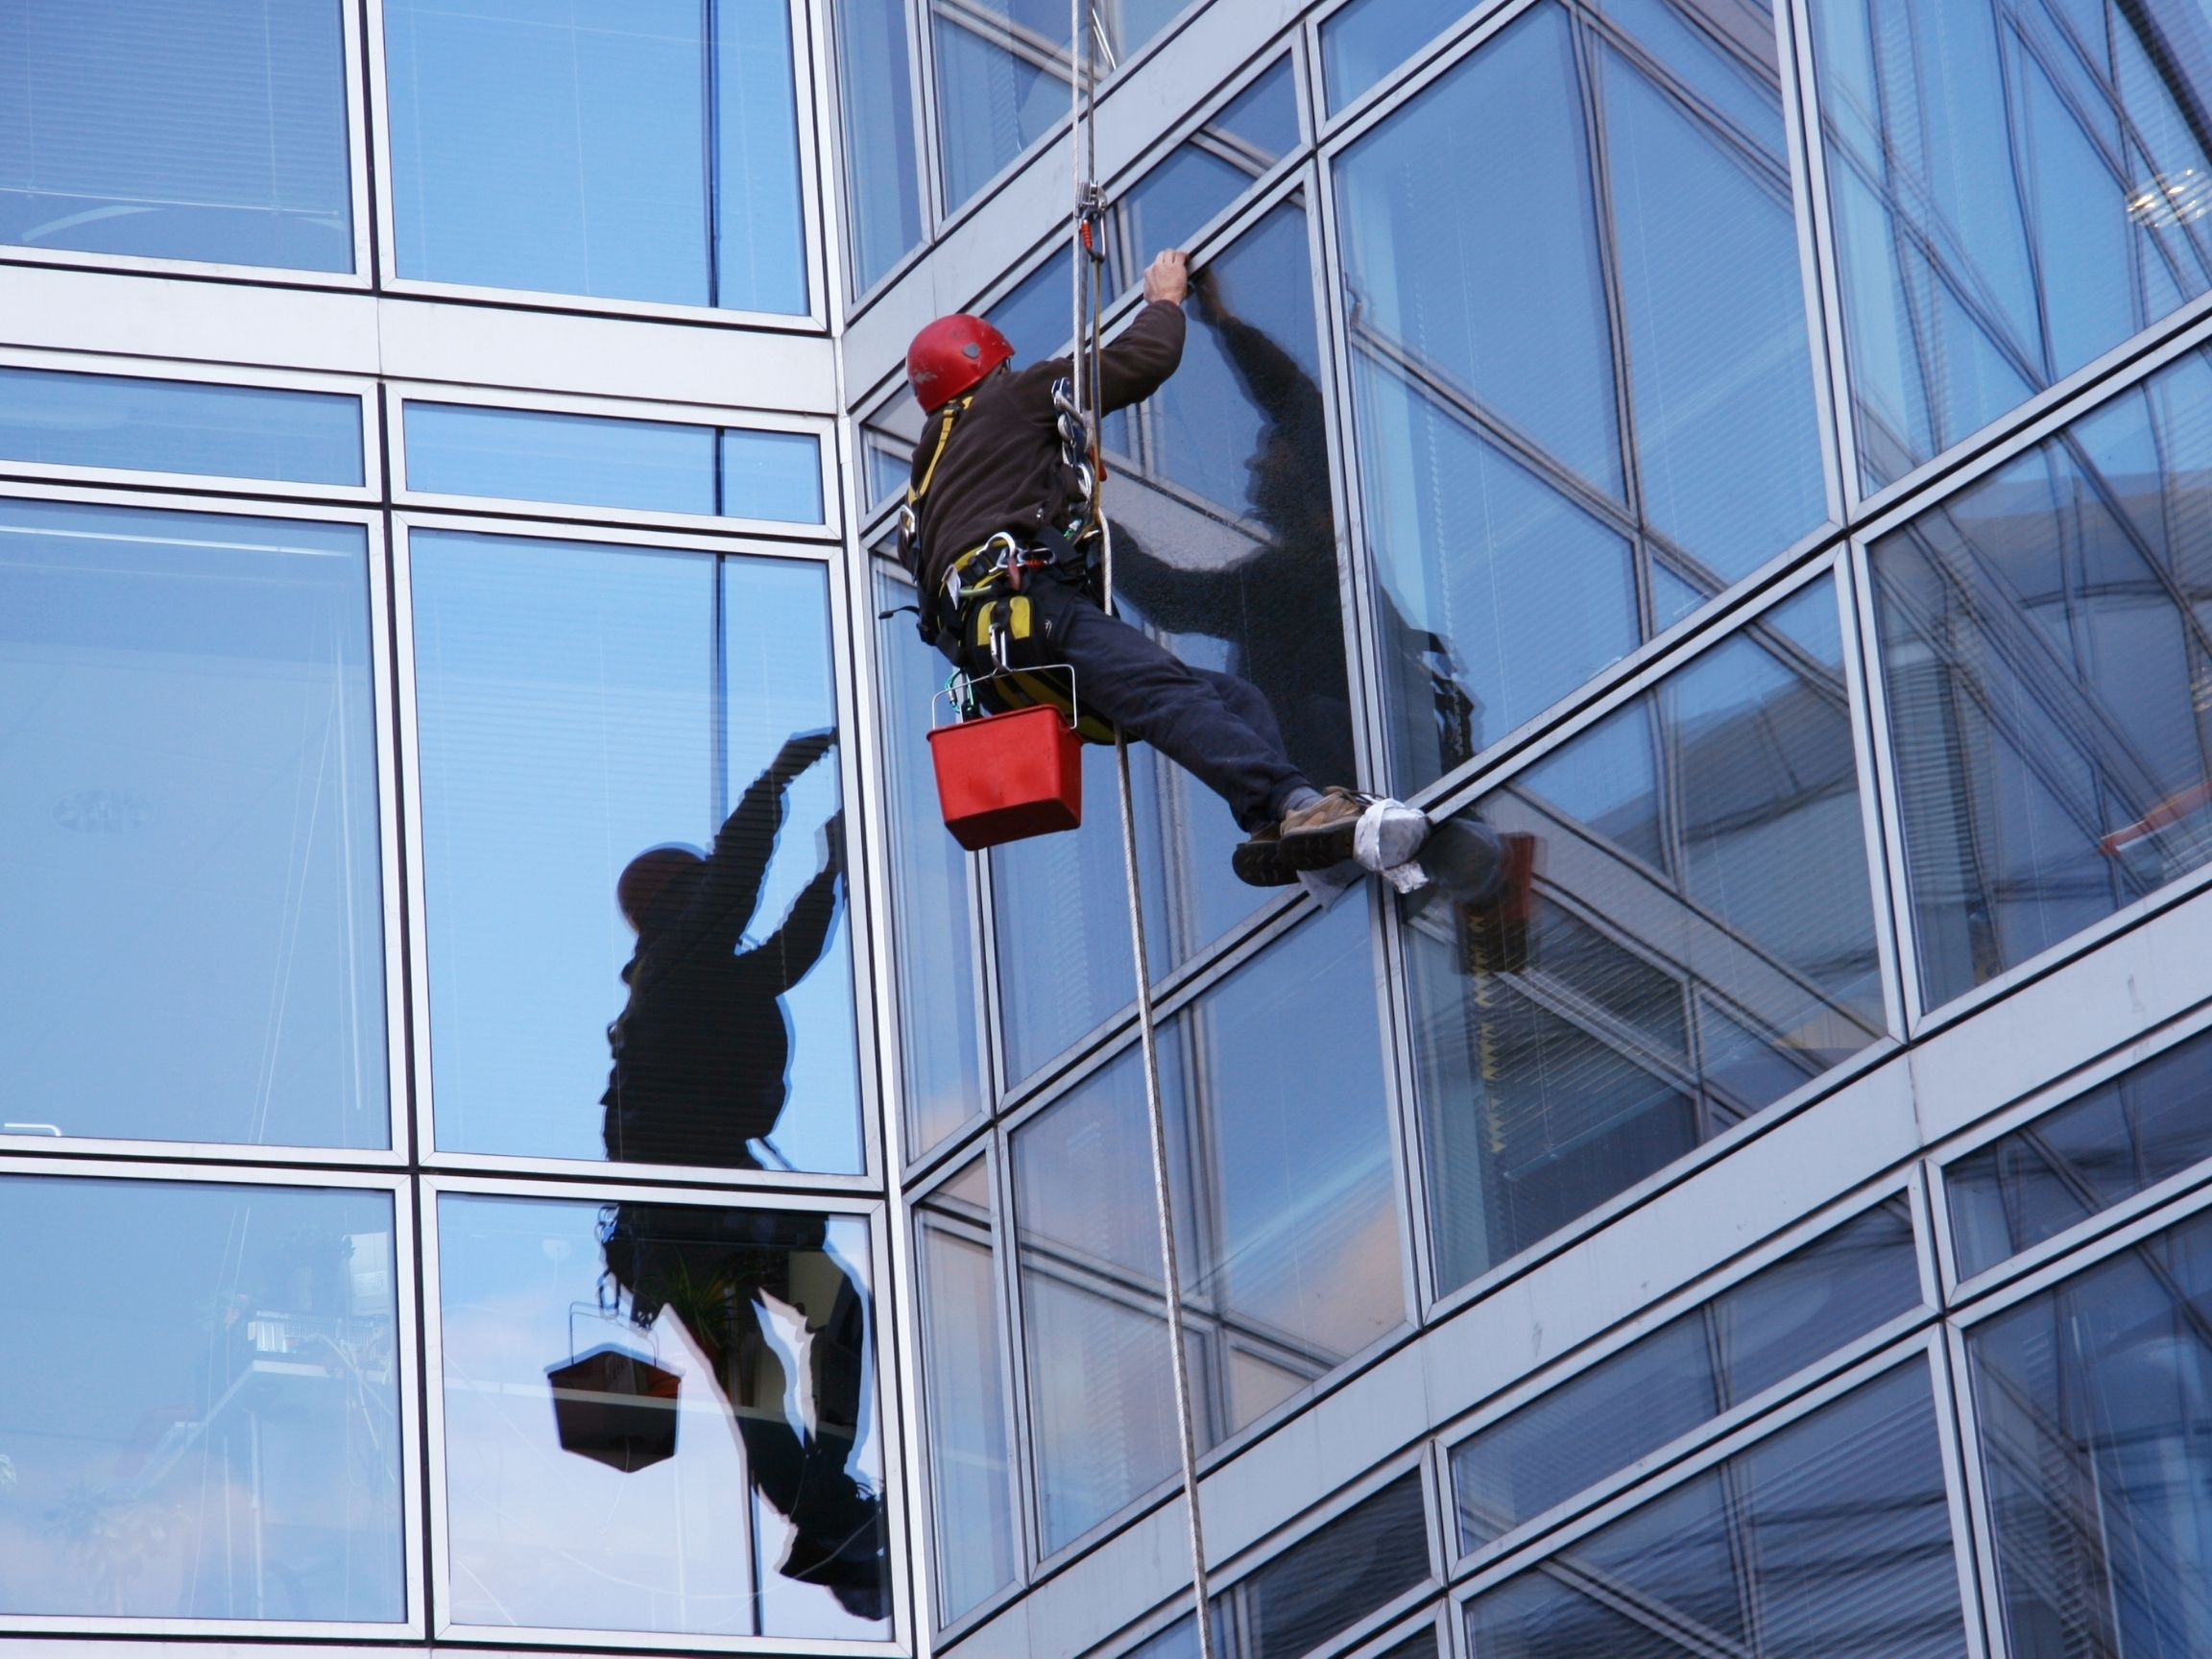 Commerical-window-cleaner-working-on-angled-building